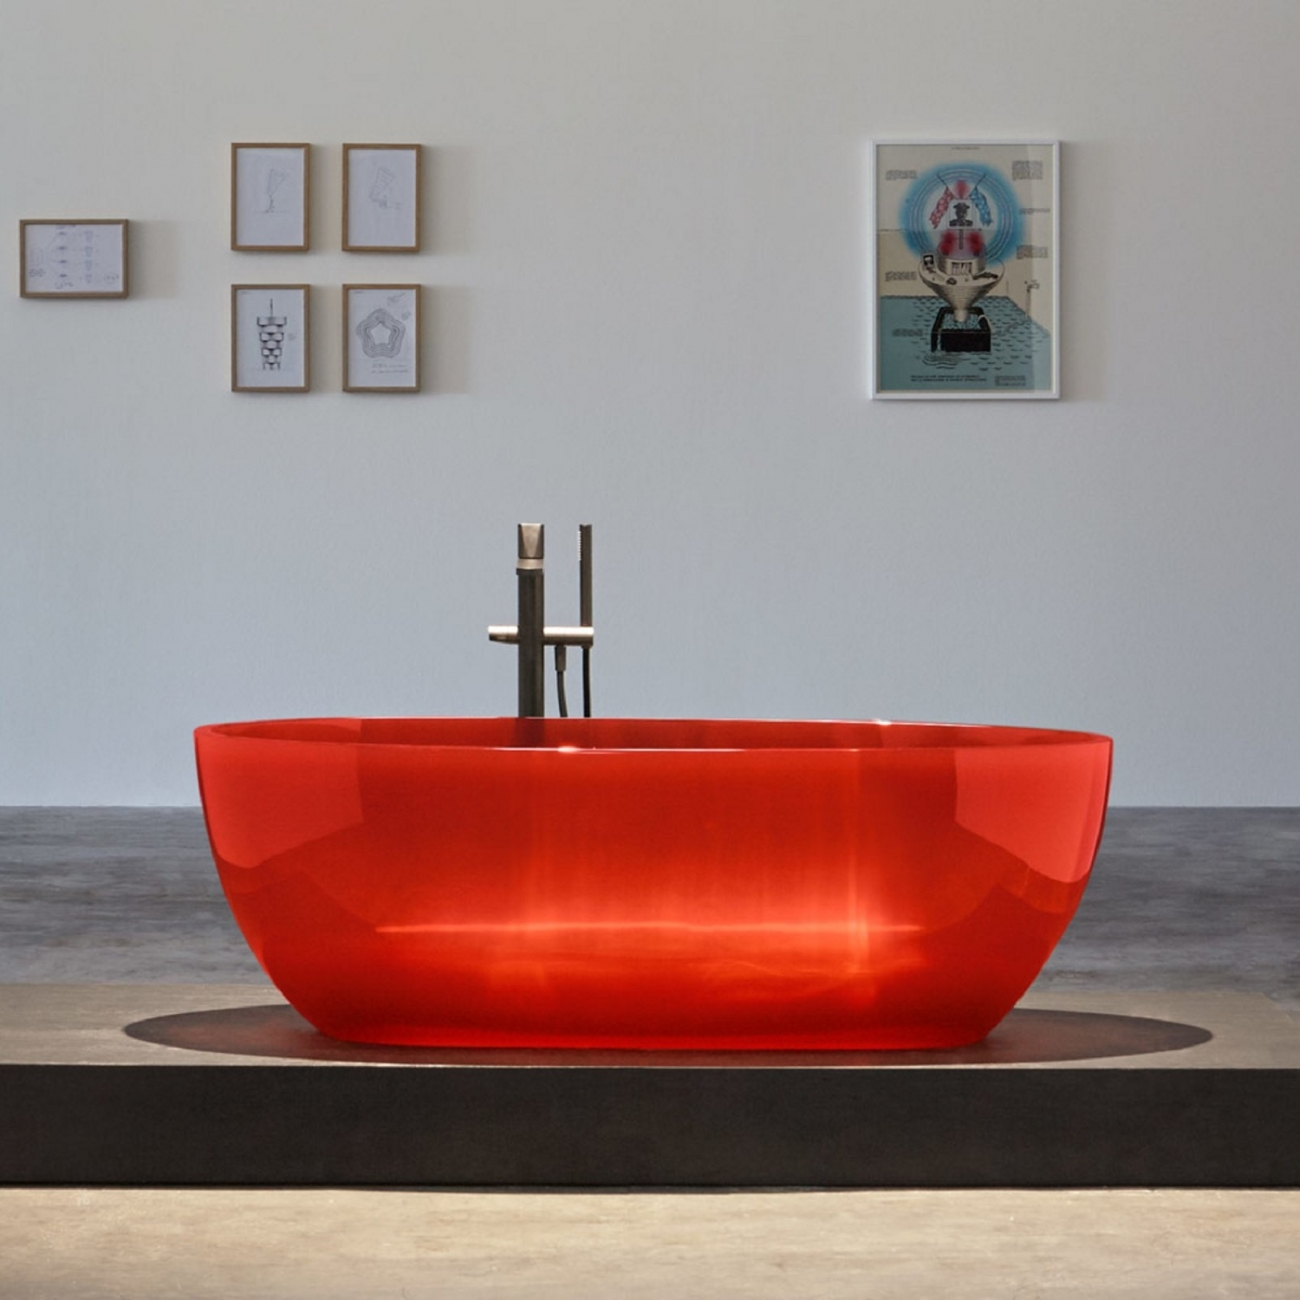 ANTONIO LUPI REFLEX CRISTALMOOD BATHTUB